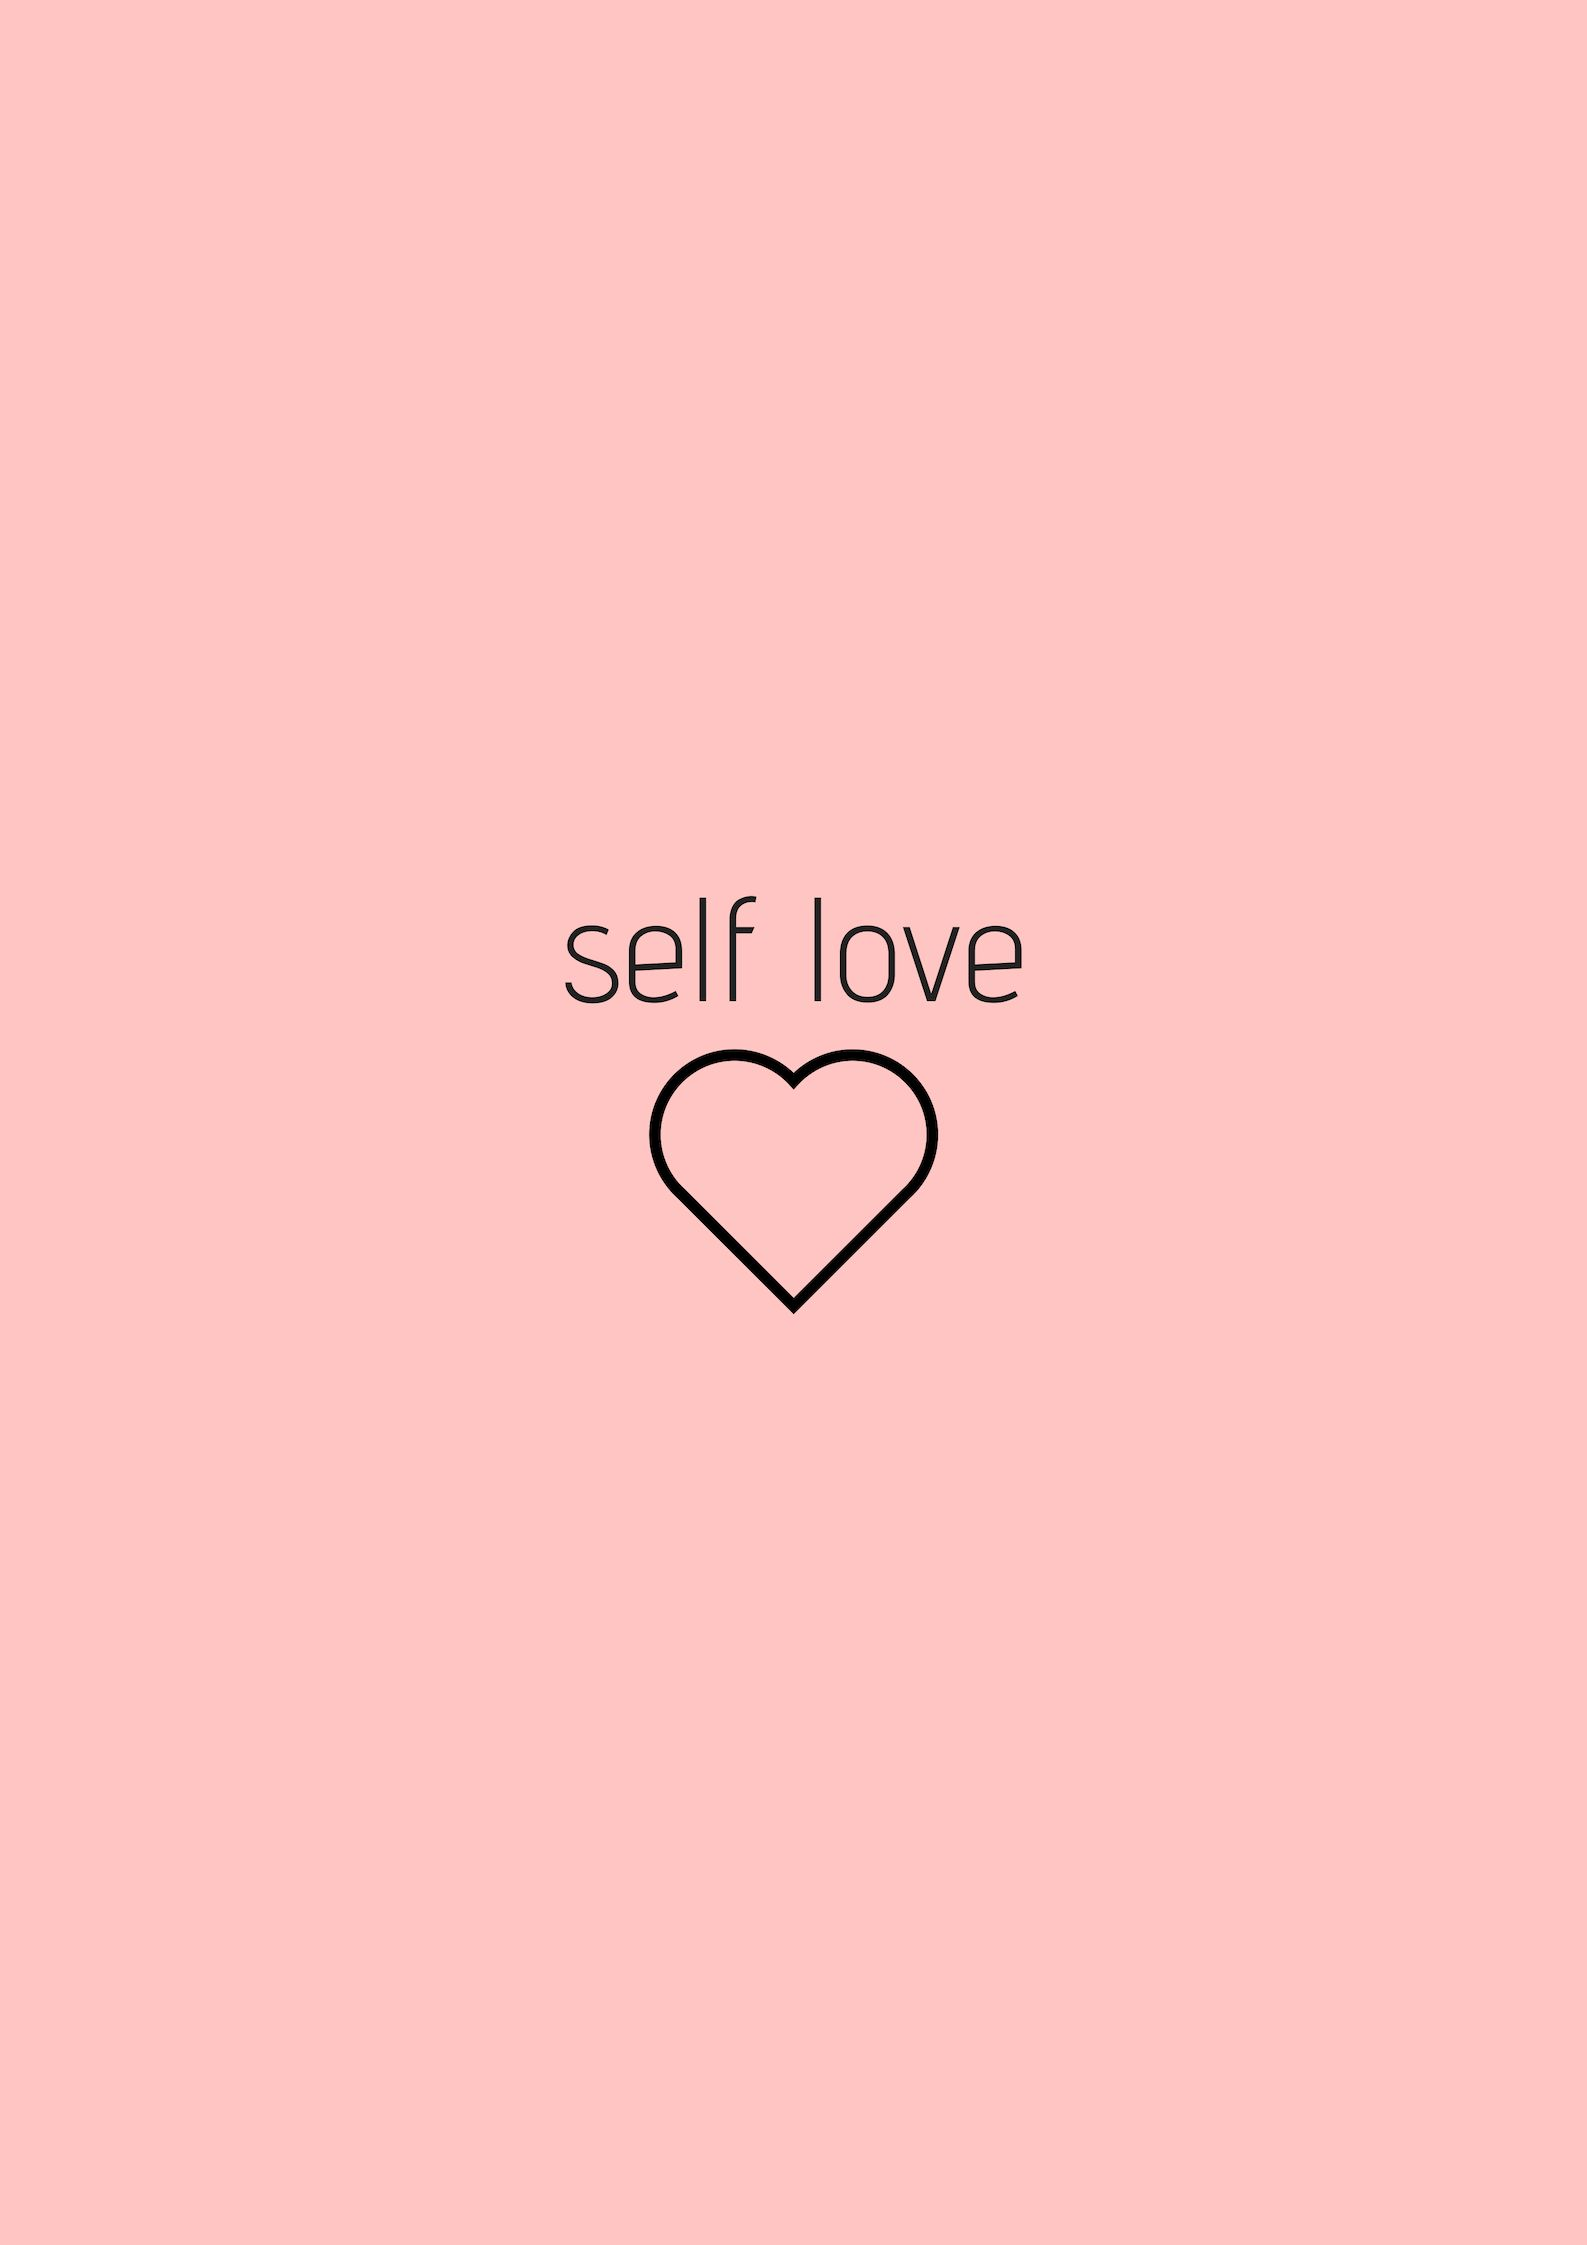 Self Love Self Love Pastel Pink Aesthetic Artsy Pictures